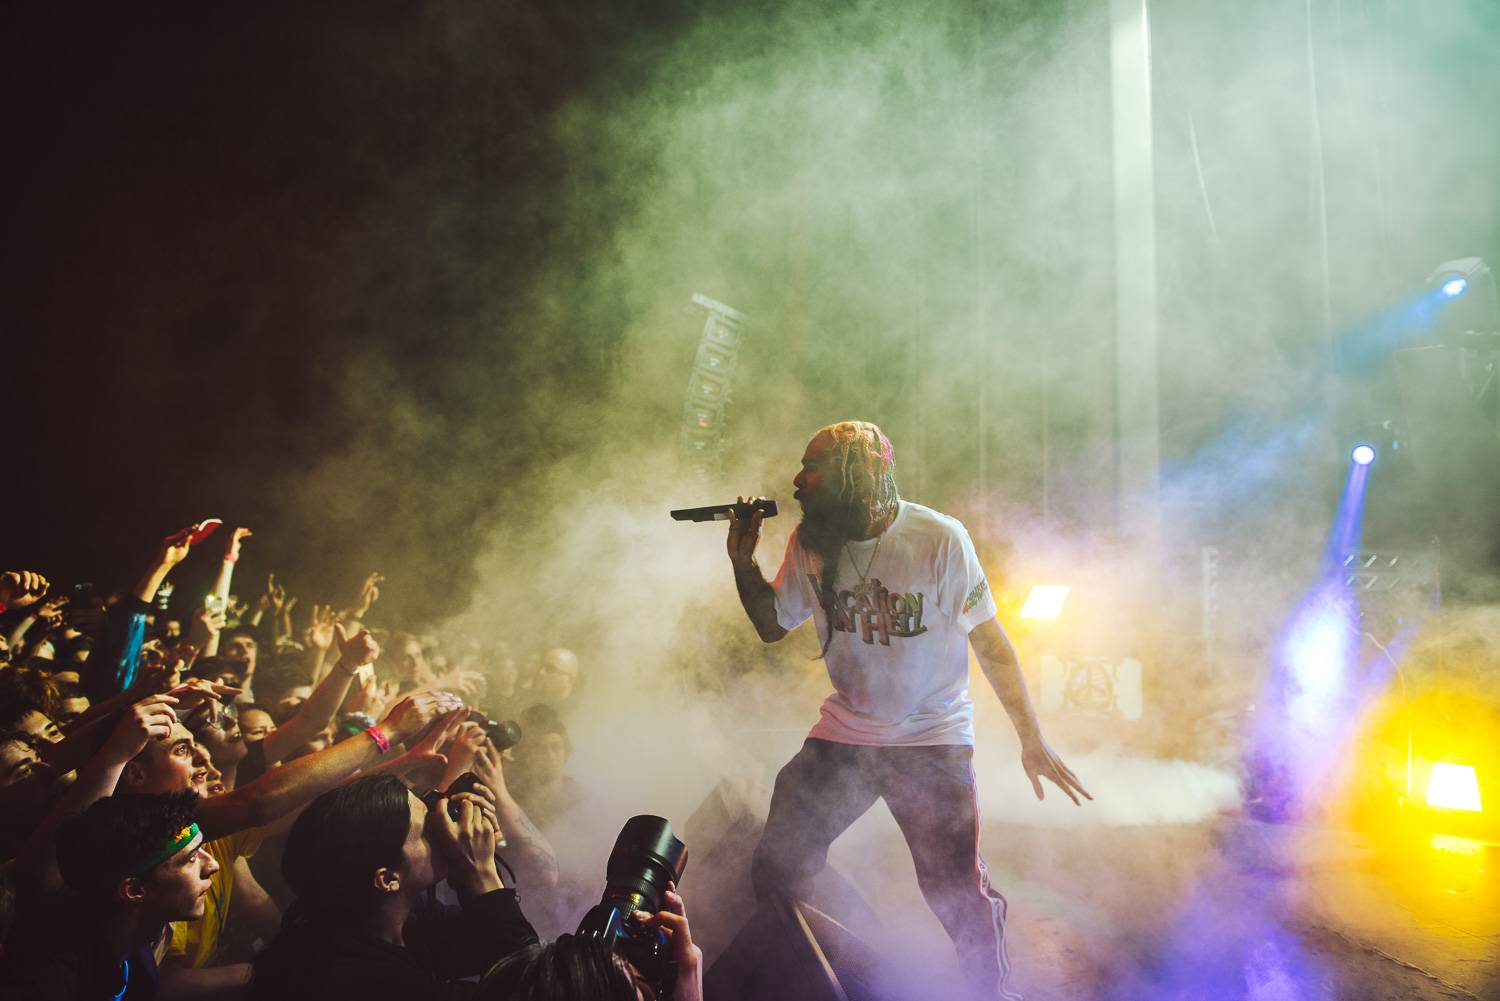 Flatbush Zombies at the Vogue Theatre, Vancouver, April 27 2018. Pavel Boiko photo.